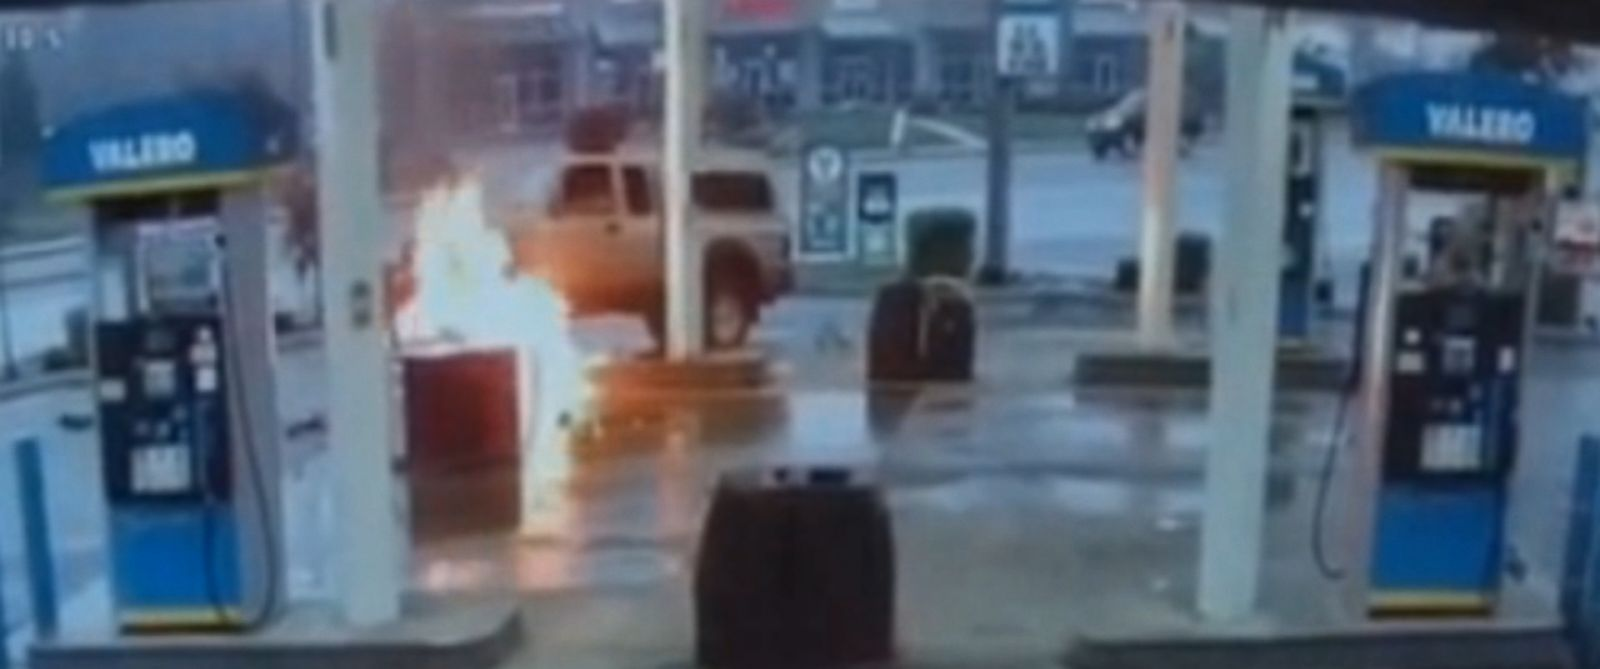 PHOTO:A driver hit a gas pump causing the pump to burst into flames, in Everett, Wash., Feb.27, 2016.